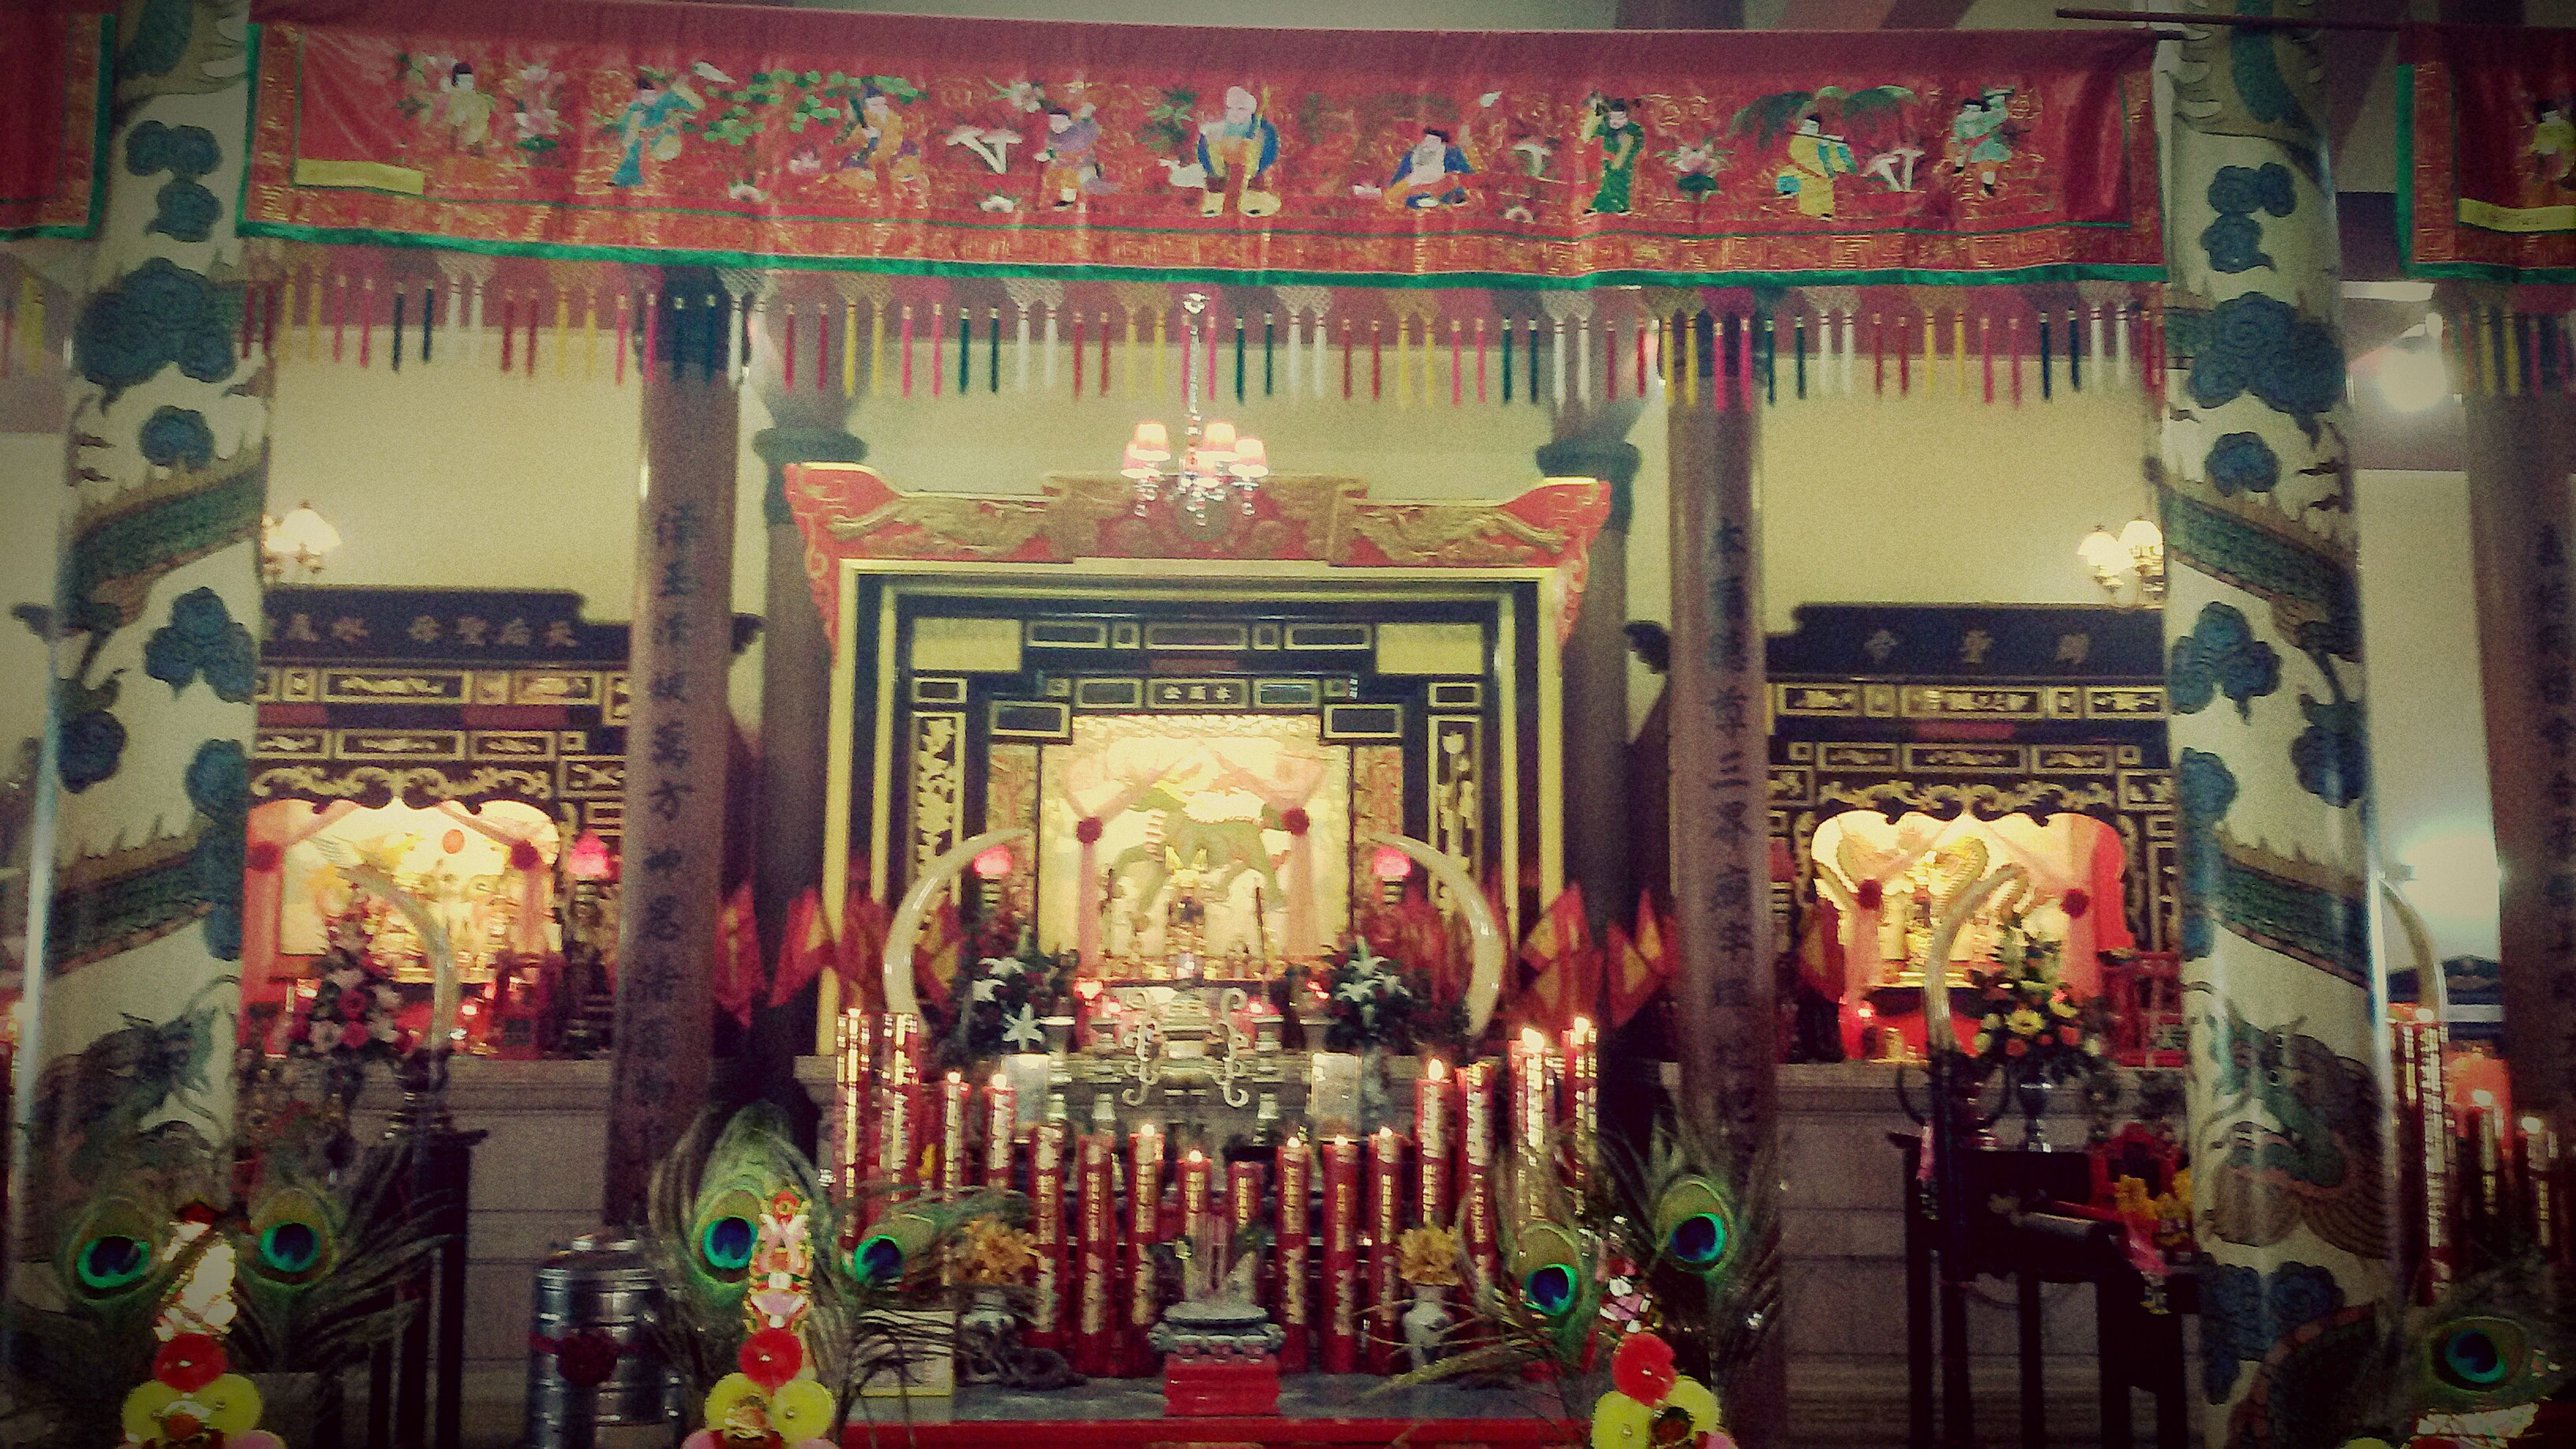 hanging, religion, art and craft, place of worship, art, spirituality, architecture, built structure, decoration, illuminated, cultures, tradition, indoors, creativity, temple - building, multi colored, retail, market, store, for sale